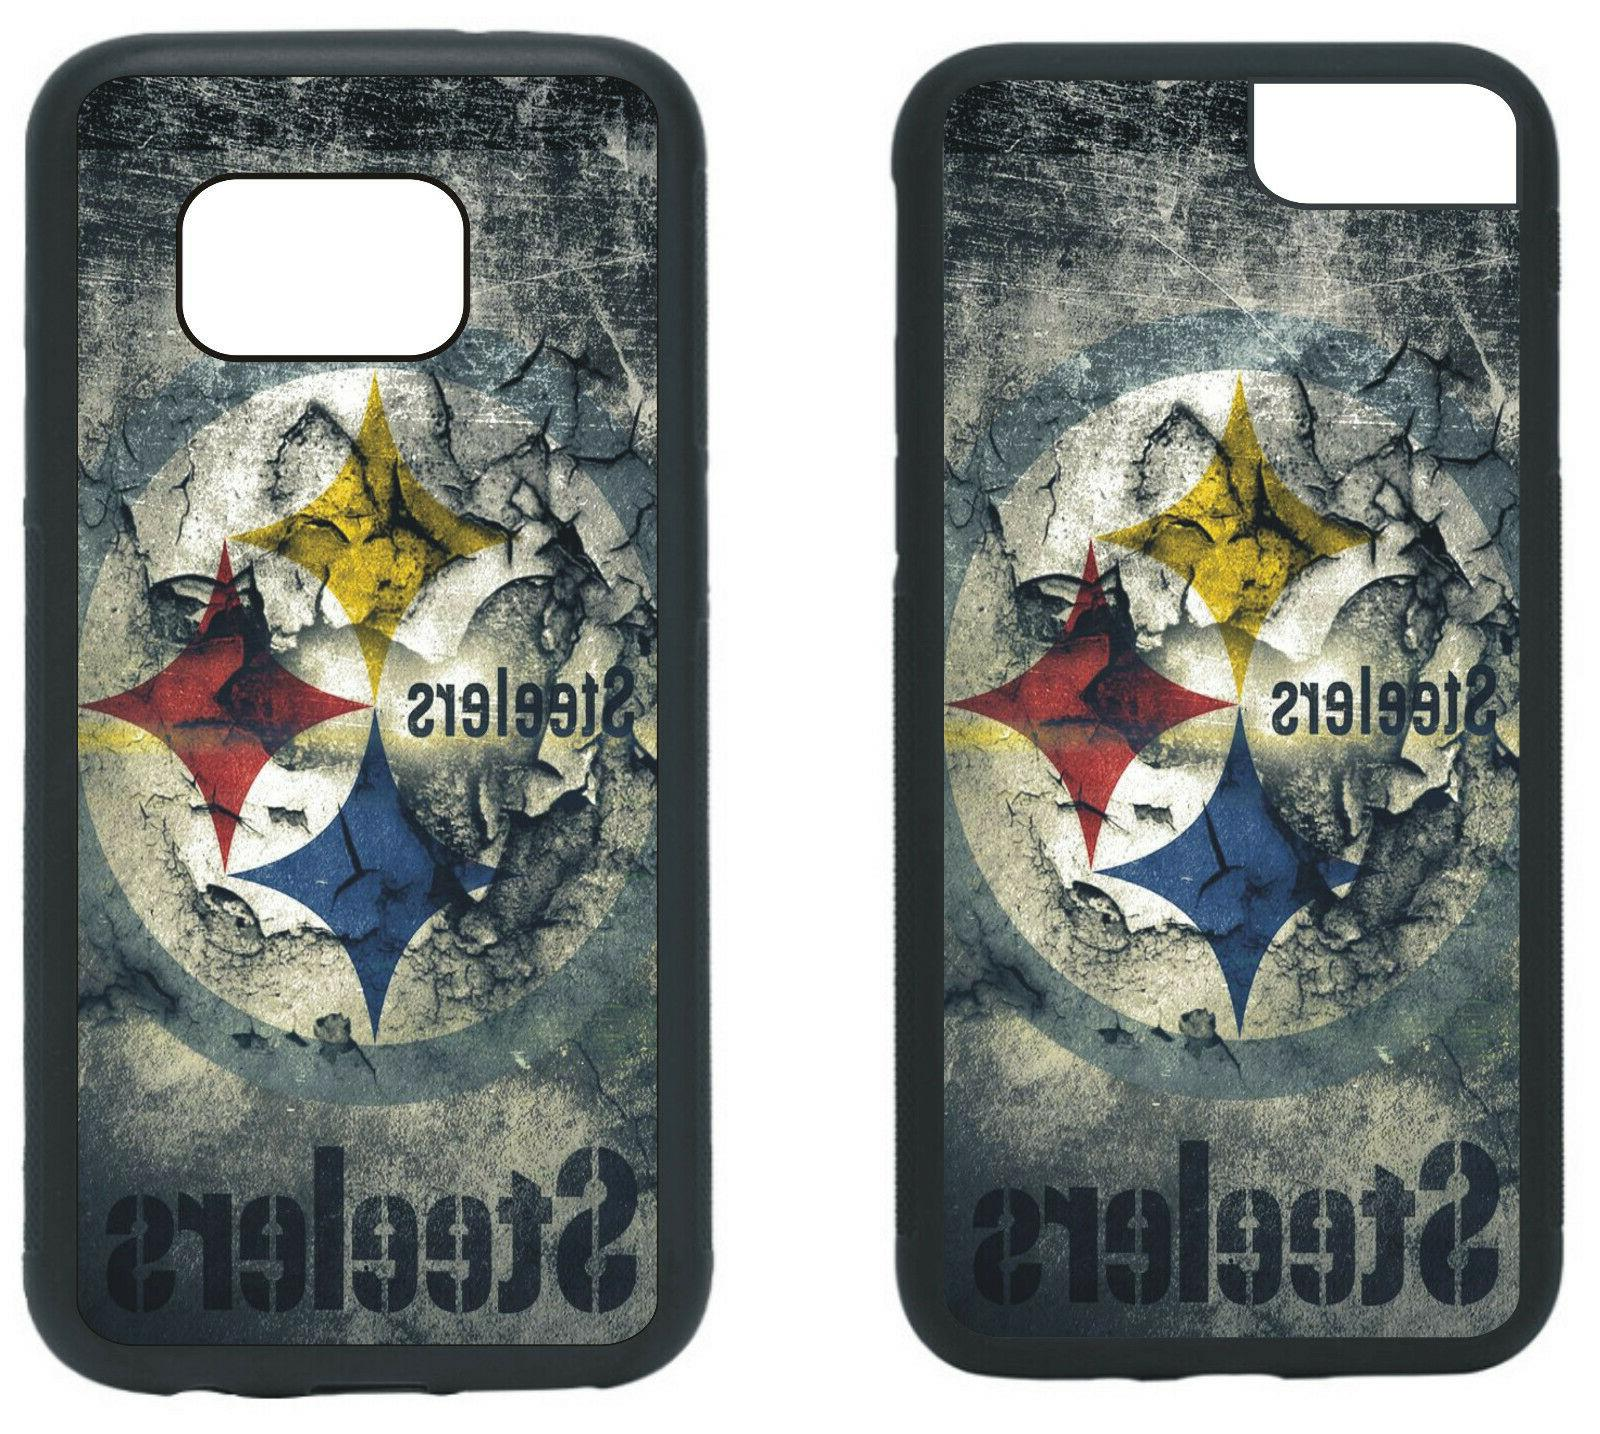 pittsburgh steelers phone case cover fits iphone